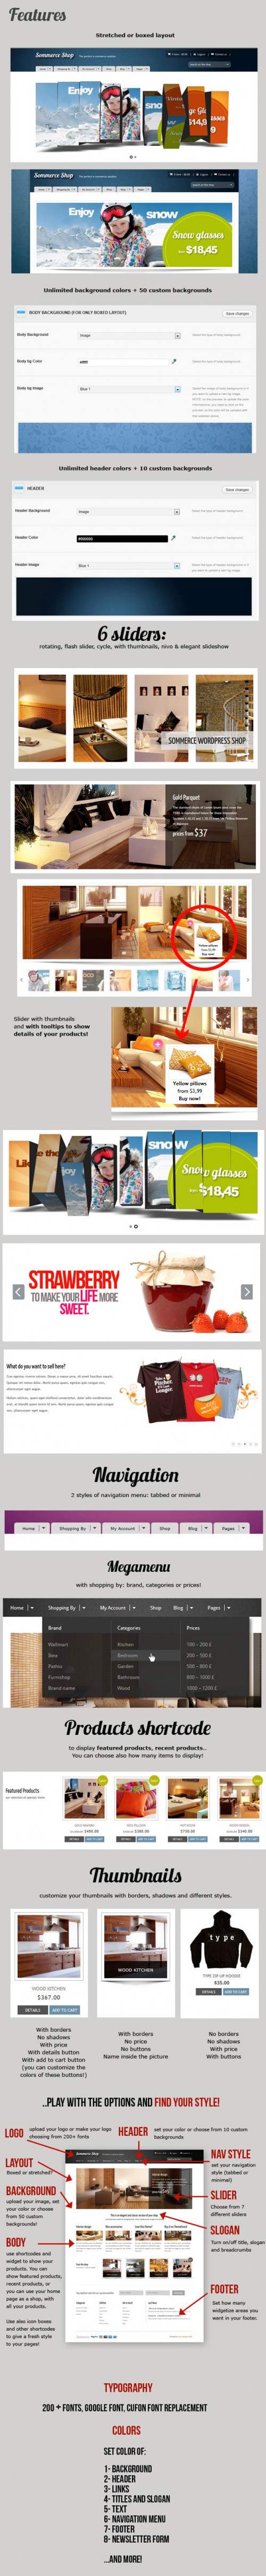 Summerce Versatile Premium eCommerce WordPress Theme Slider